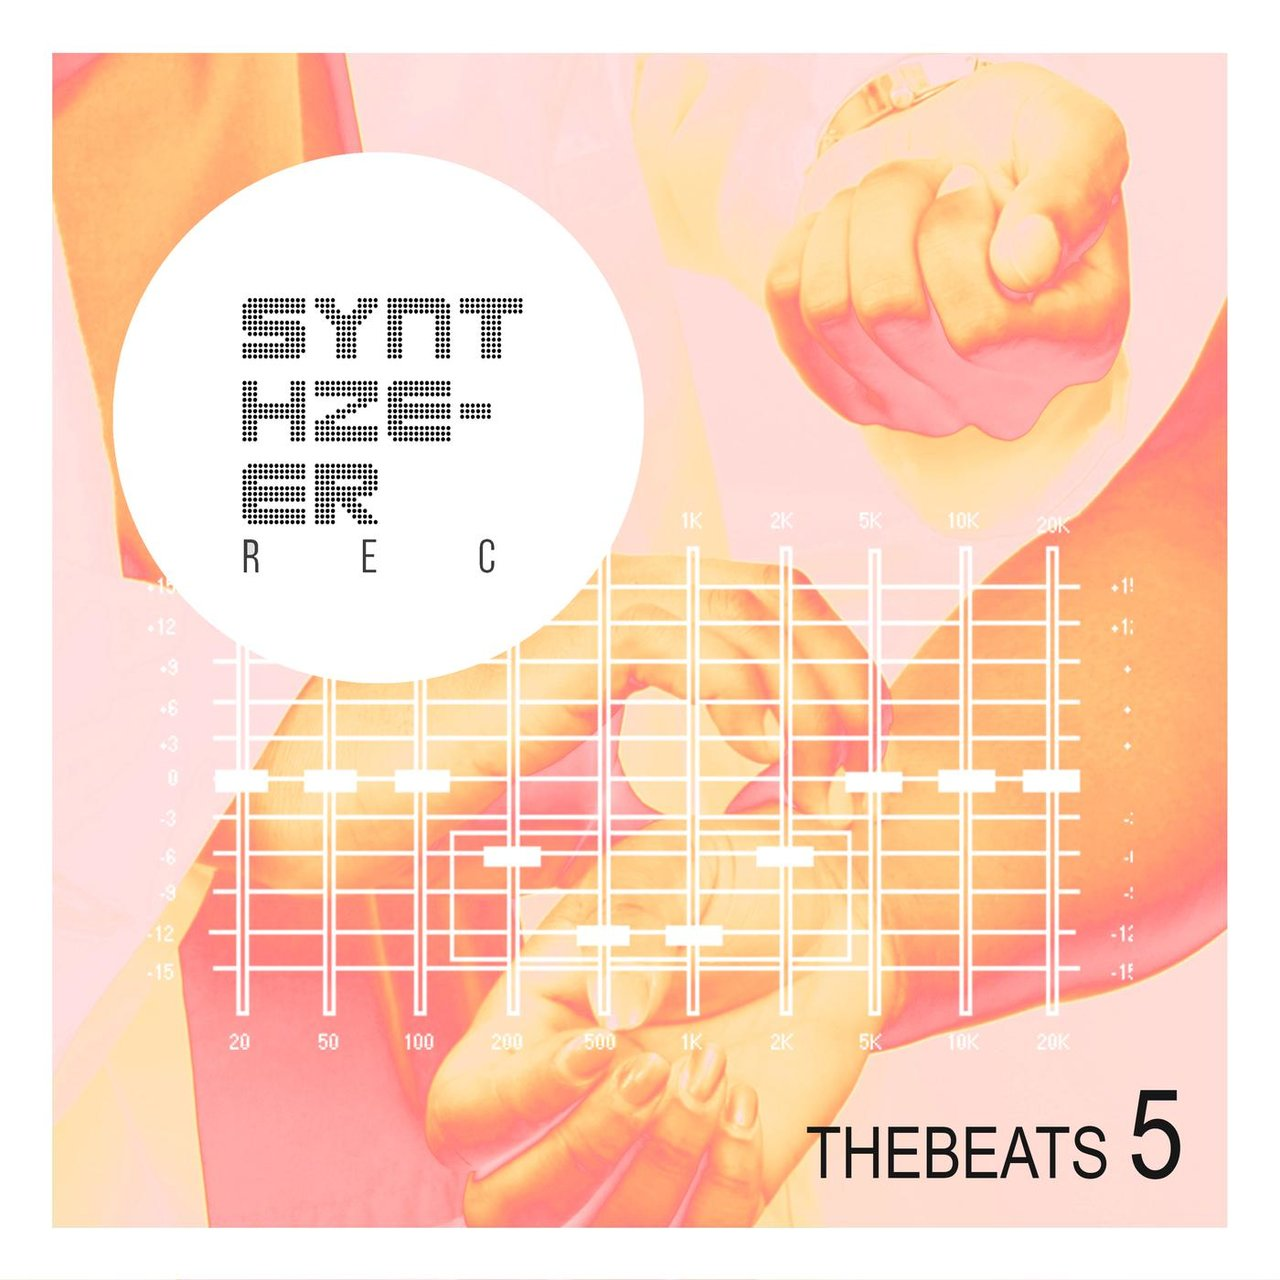 TheBeats 5